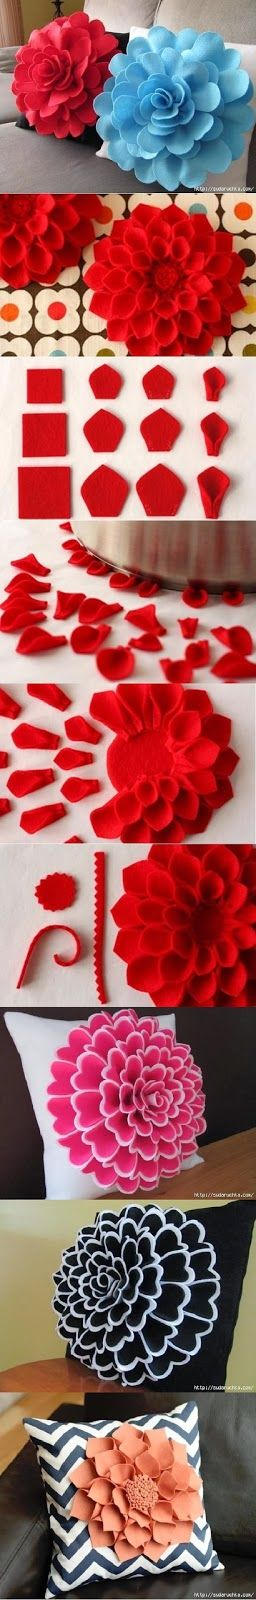 DIY Decorative Felt Flower Pillow